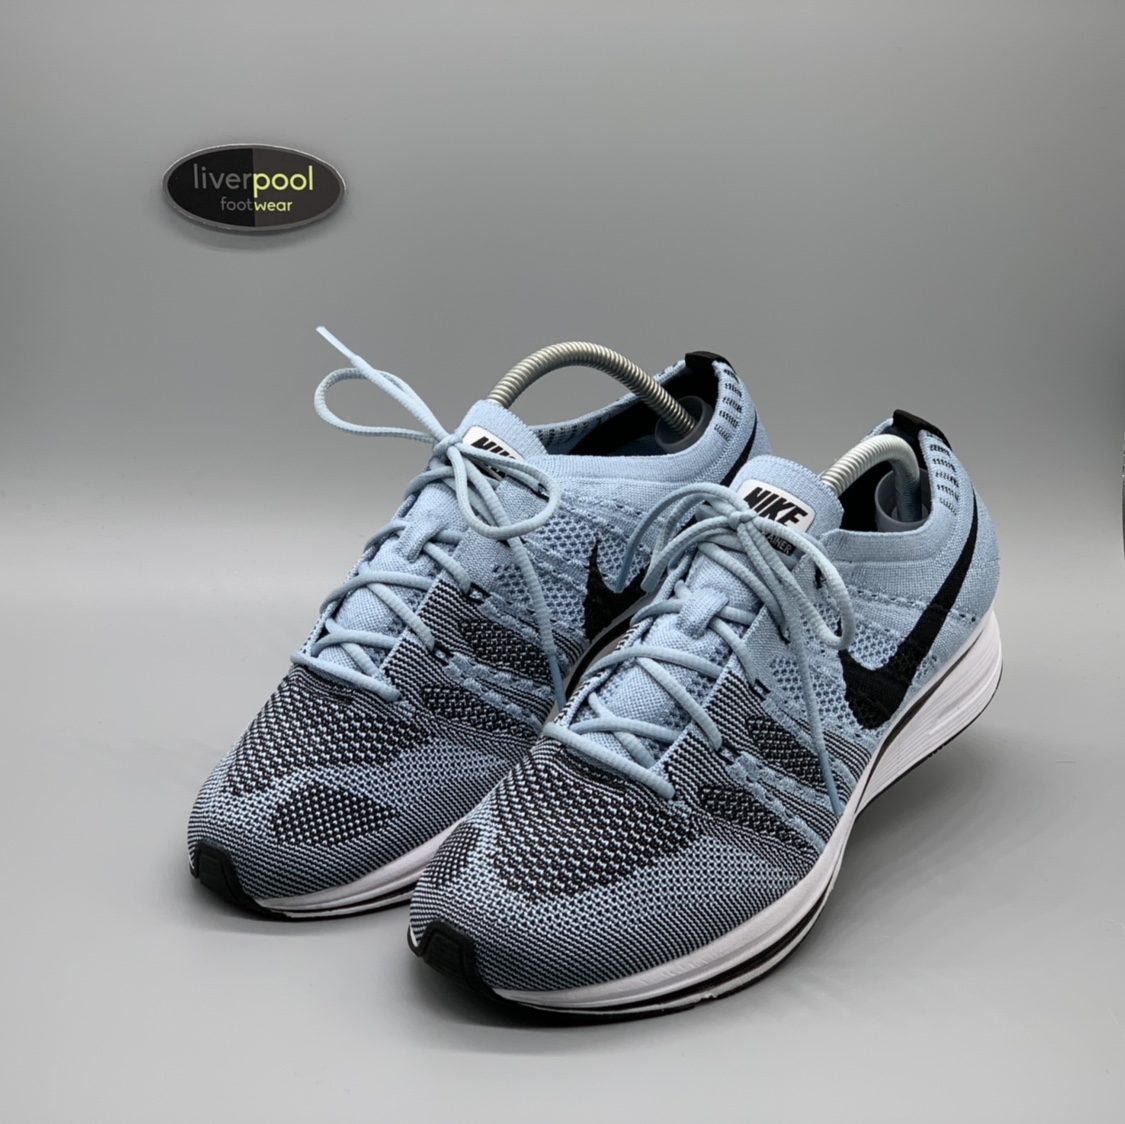 clearance prices save up to 80% lace up in Nike Flyknit Trainer - Baby Blue - Worn Once - UK... - Depop